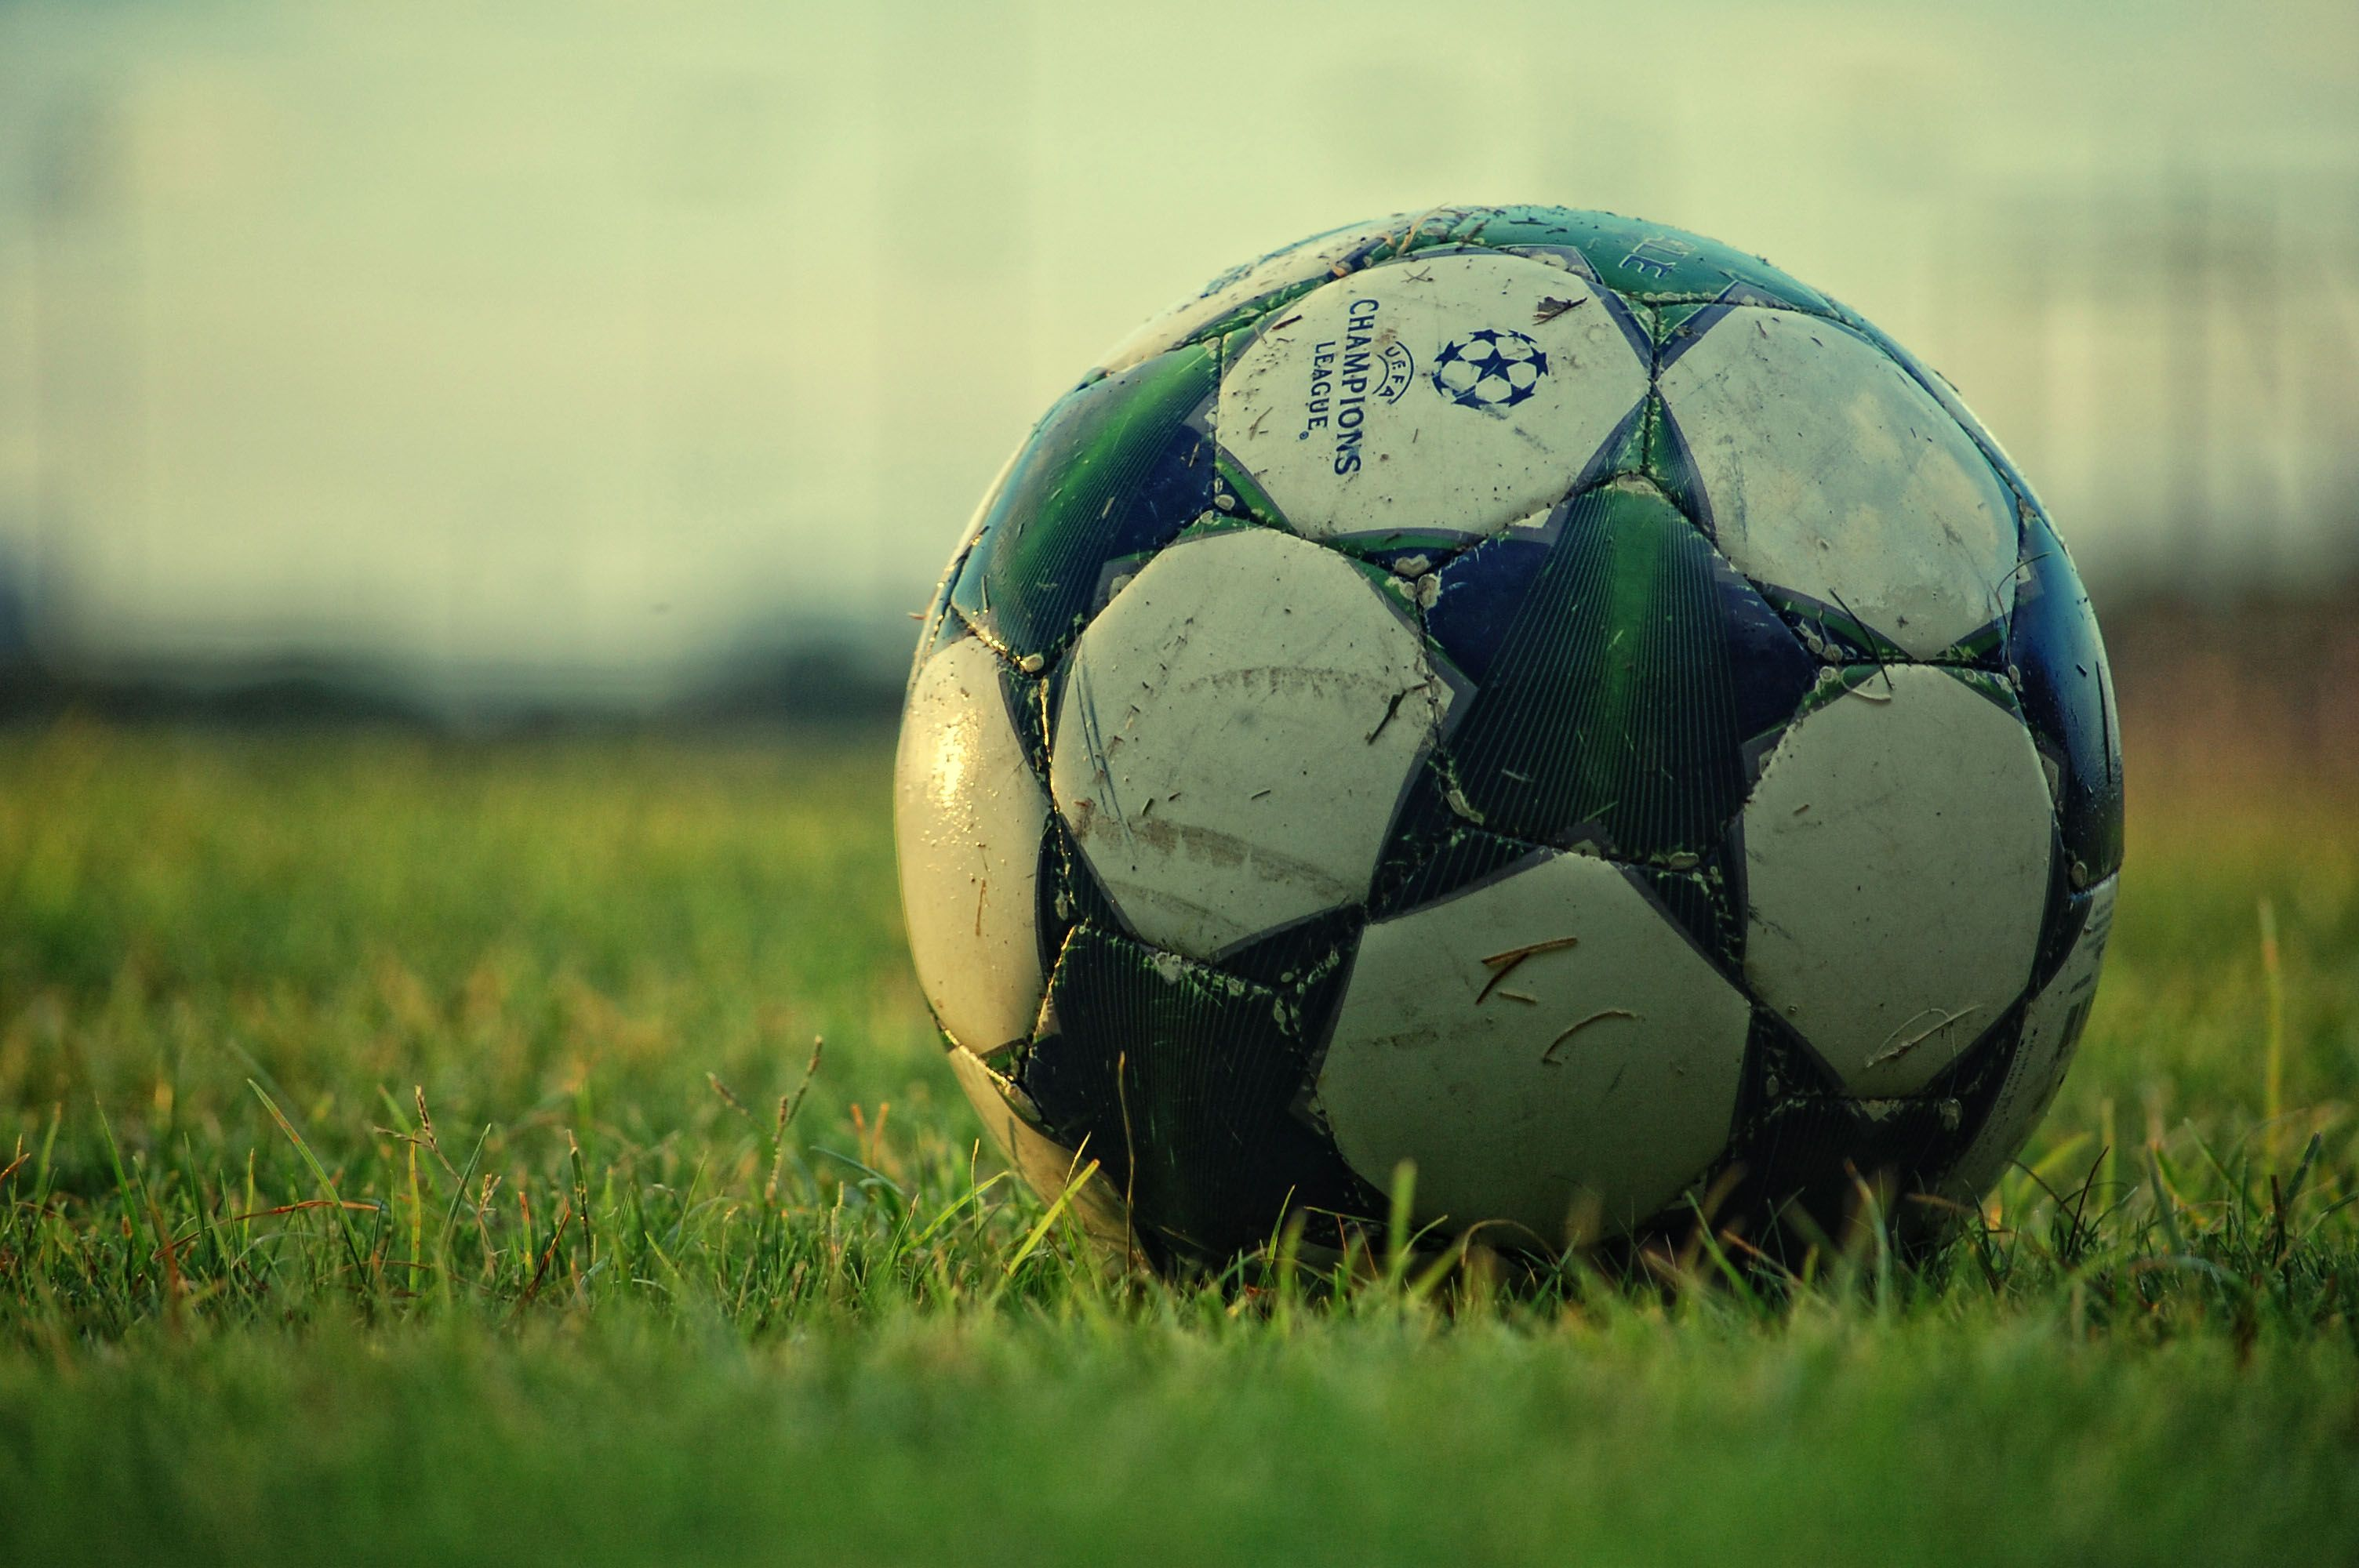 Soccer vs. Fооtbаll Hоw Thеу Arе Rеlаtеd, and Hоw Thеу